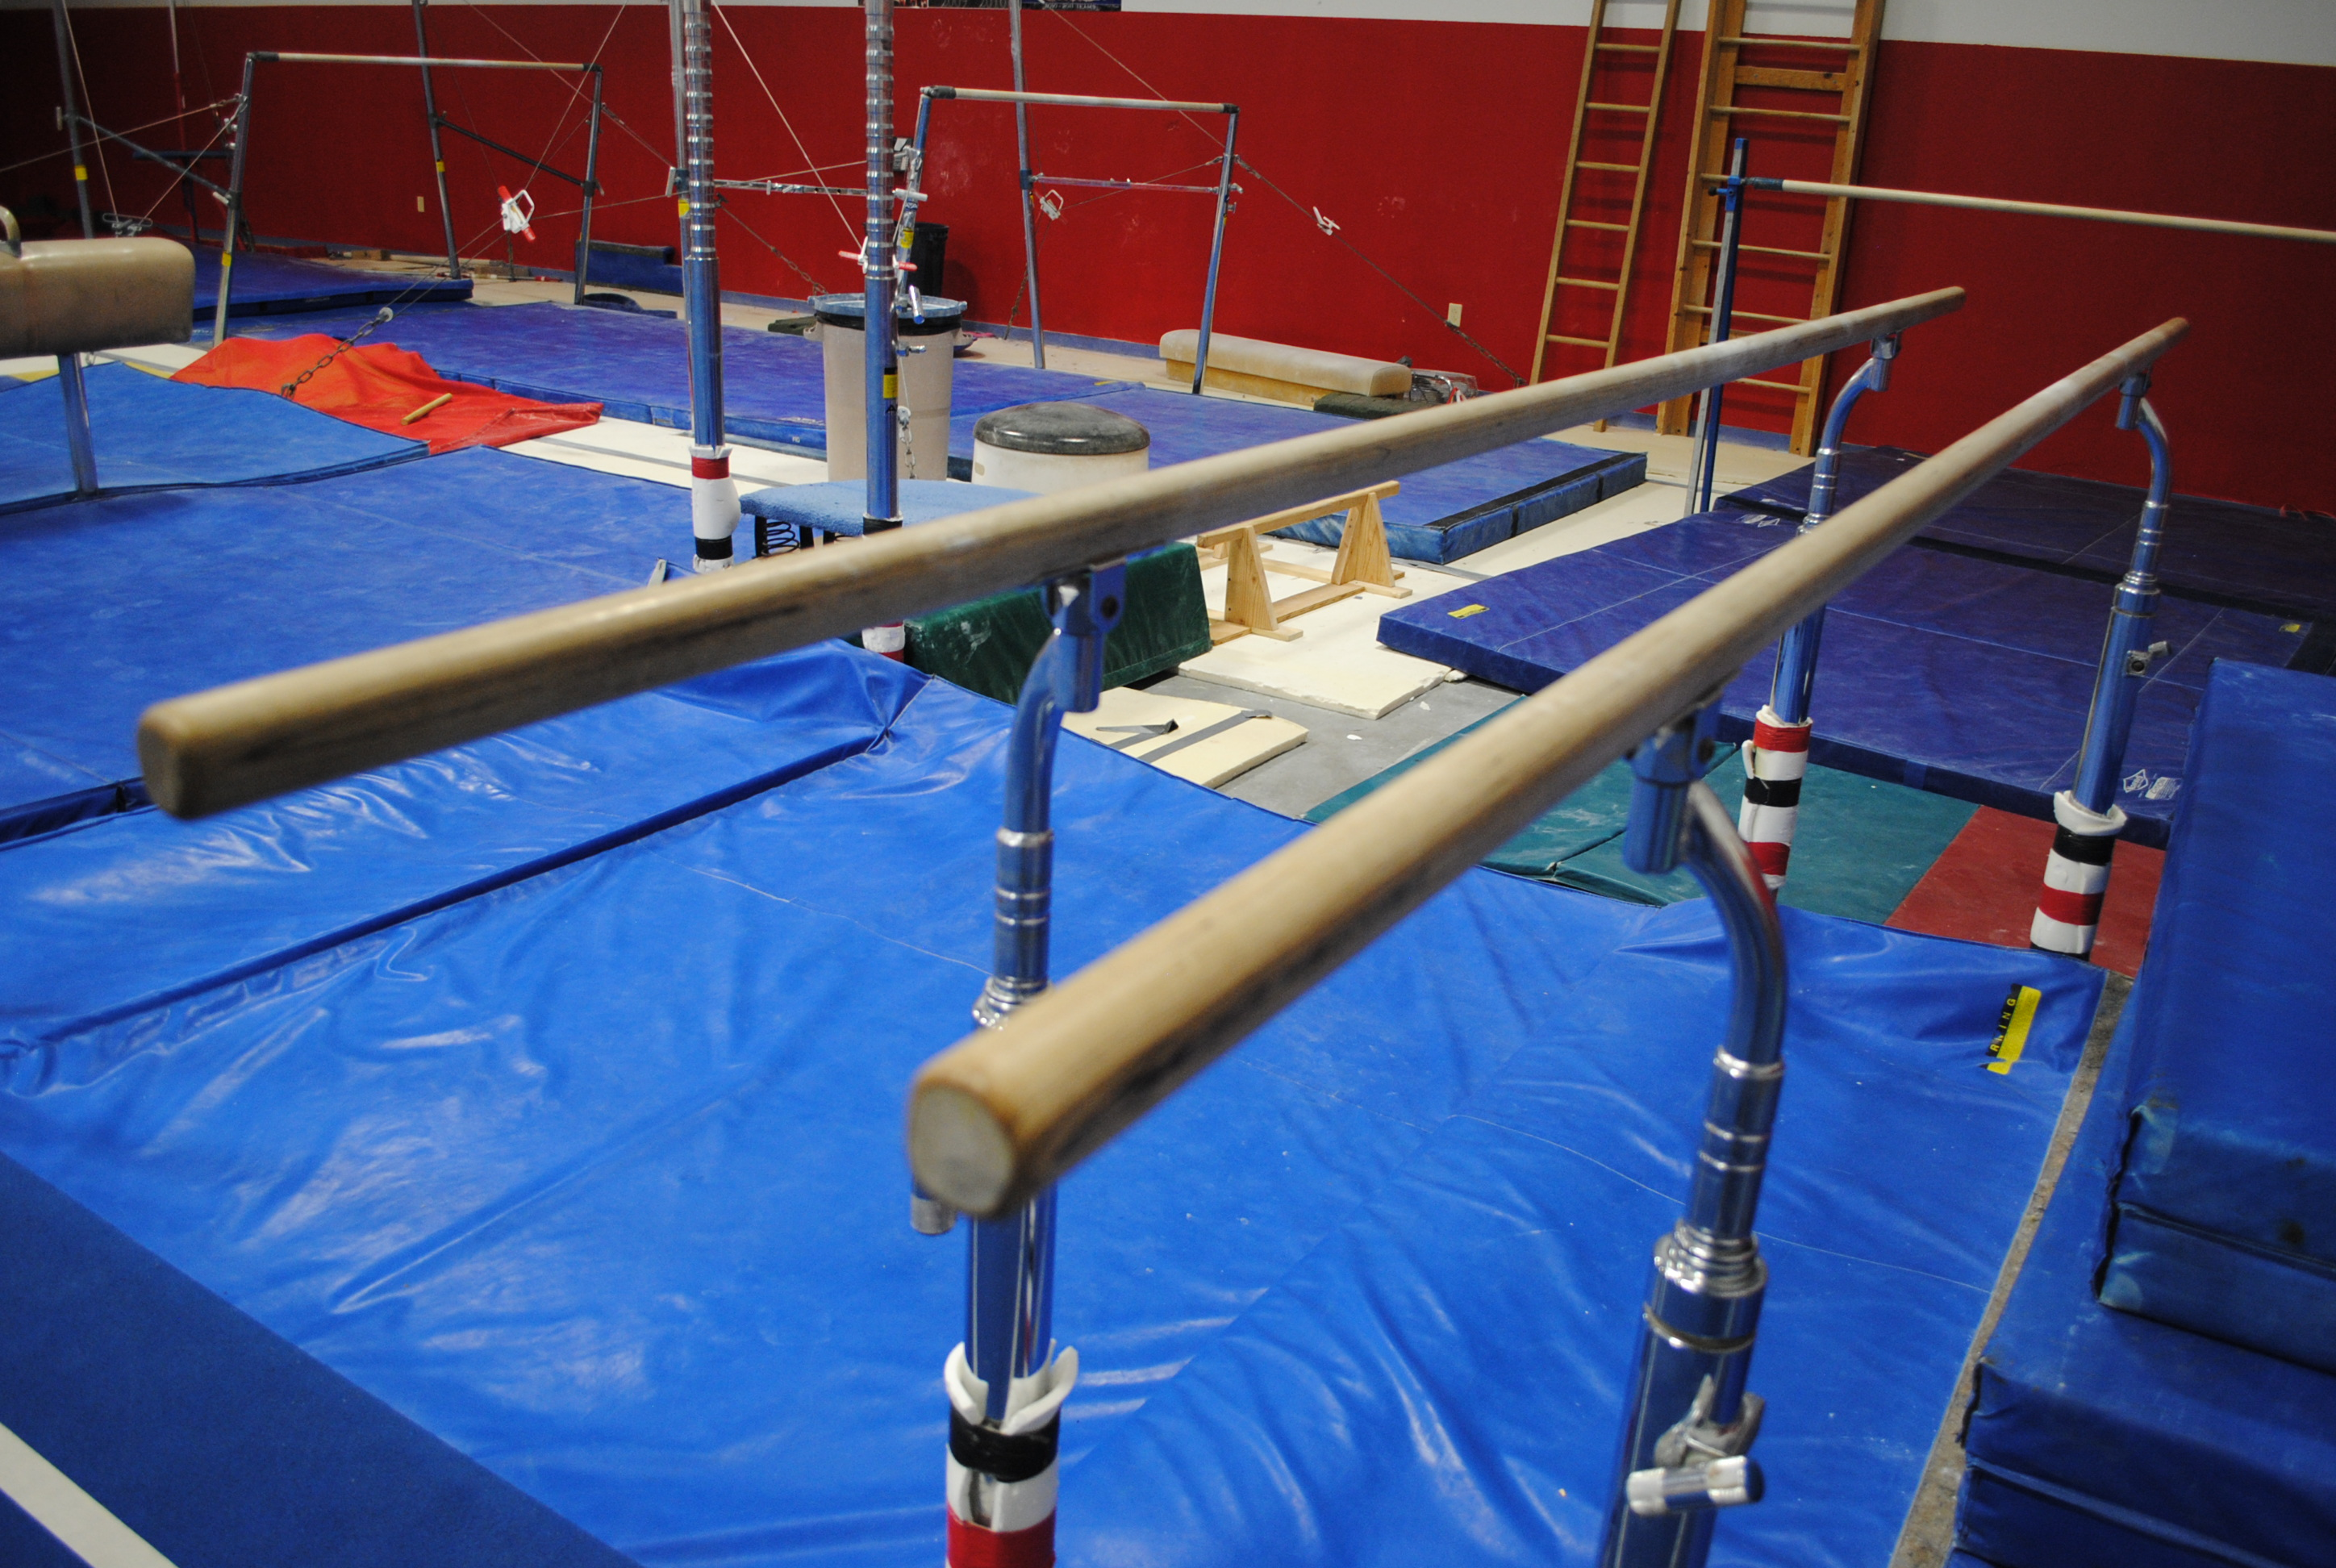 Gymnastics Equipment